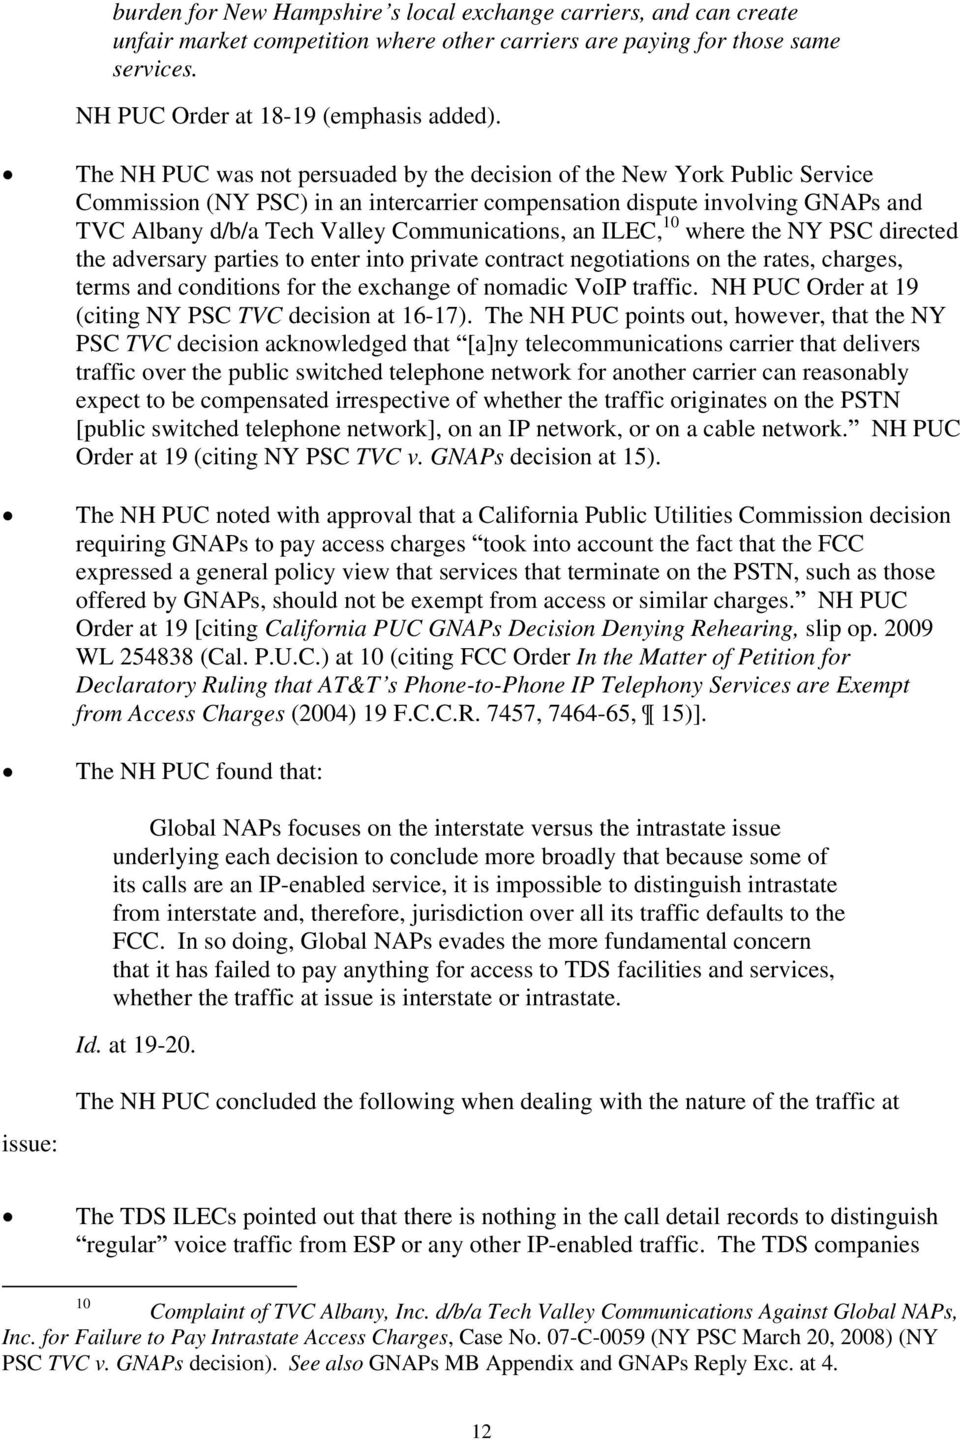 Communications, an ILEC, 10 where the NY PSC directed the adversary parties to enter into private contract negotiations on the rates, charges, terms and conditions for the exchange of nomadic VoIP